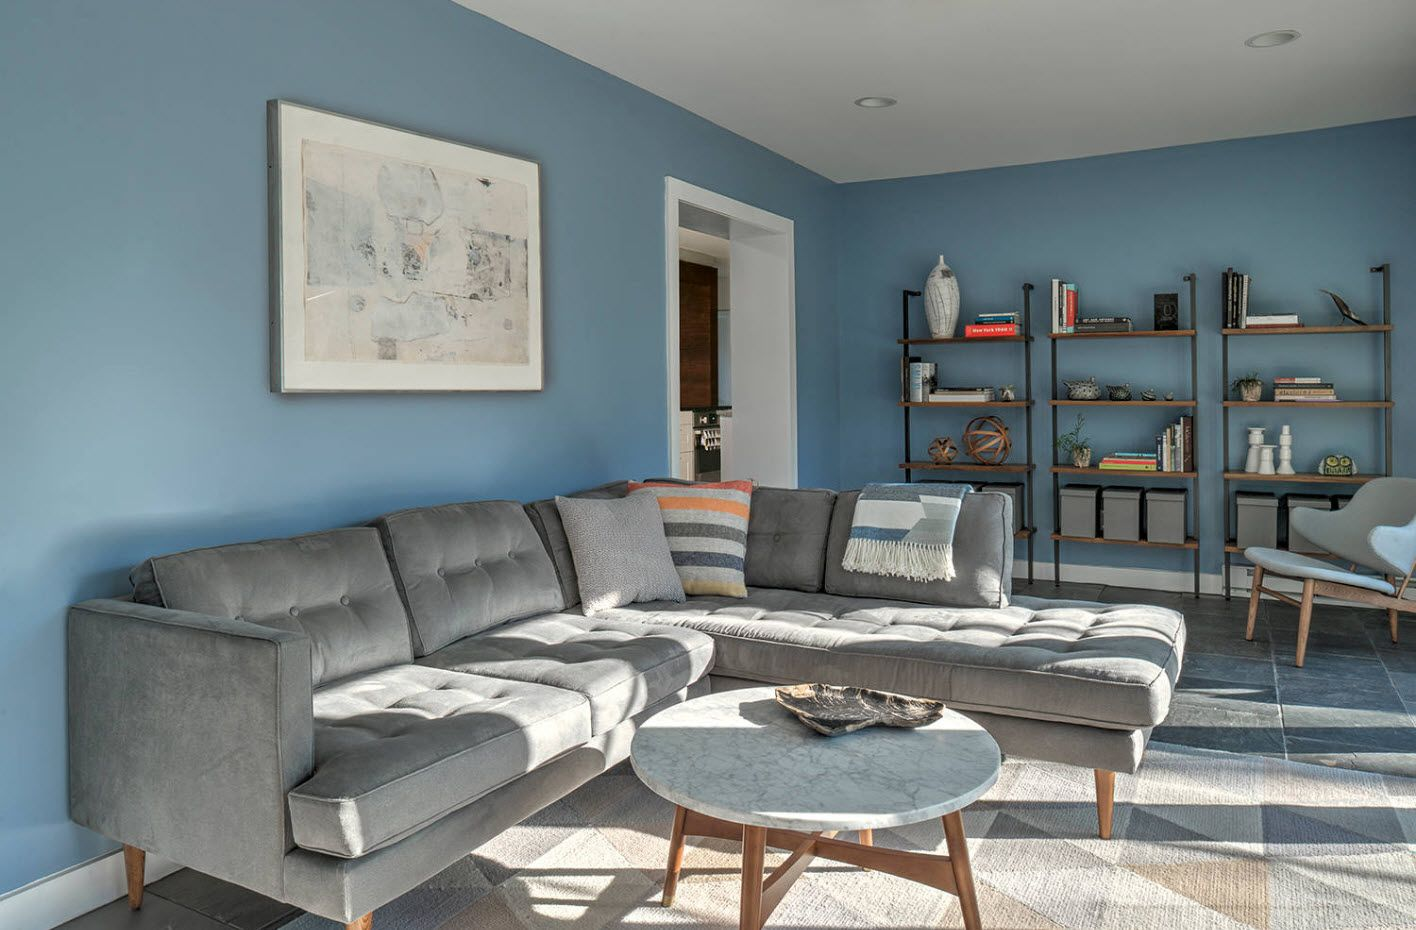 Blue setting of the living room with the sofa of silver color